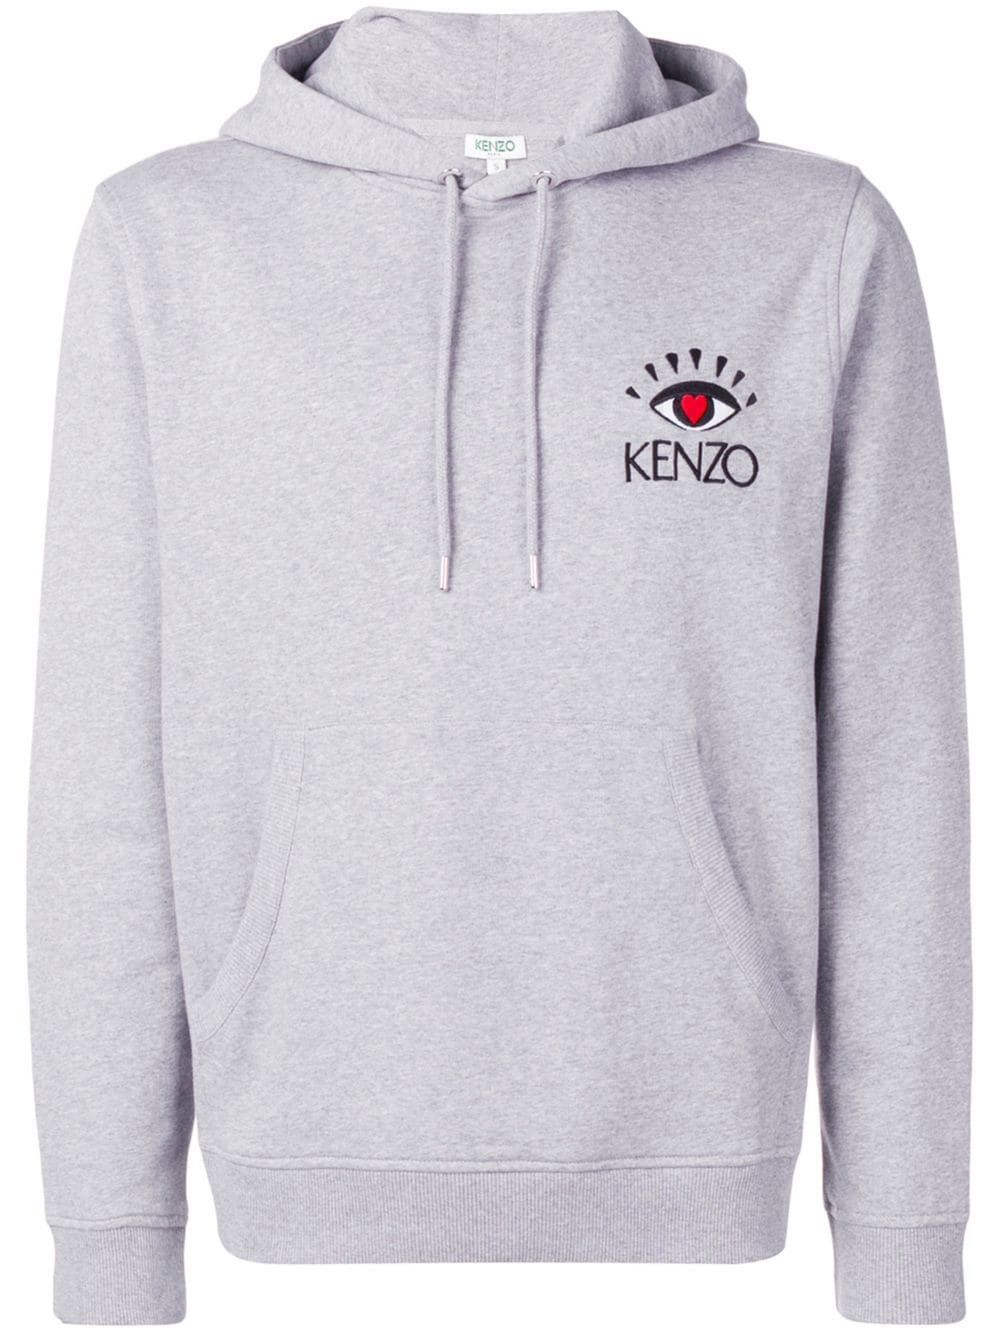 9bbb970987 Kenzo logo embroidered hoodie - Grey in 2019 | Products | Hoodies ...